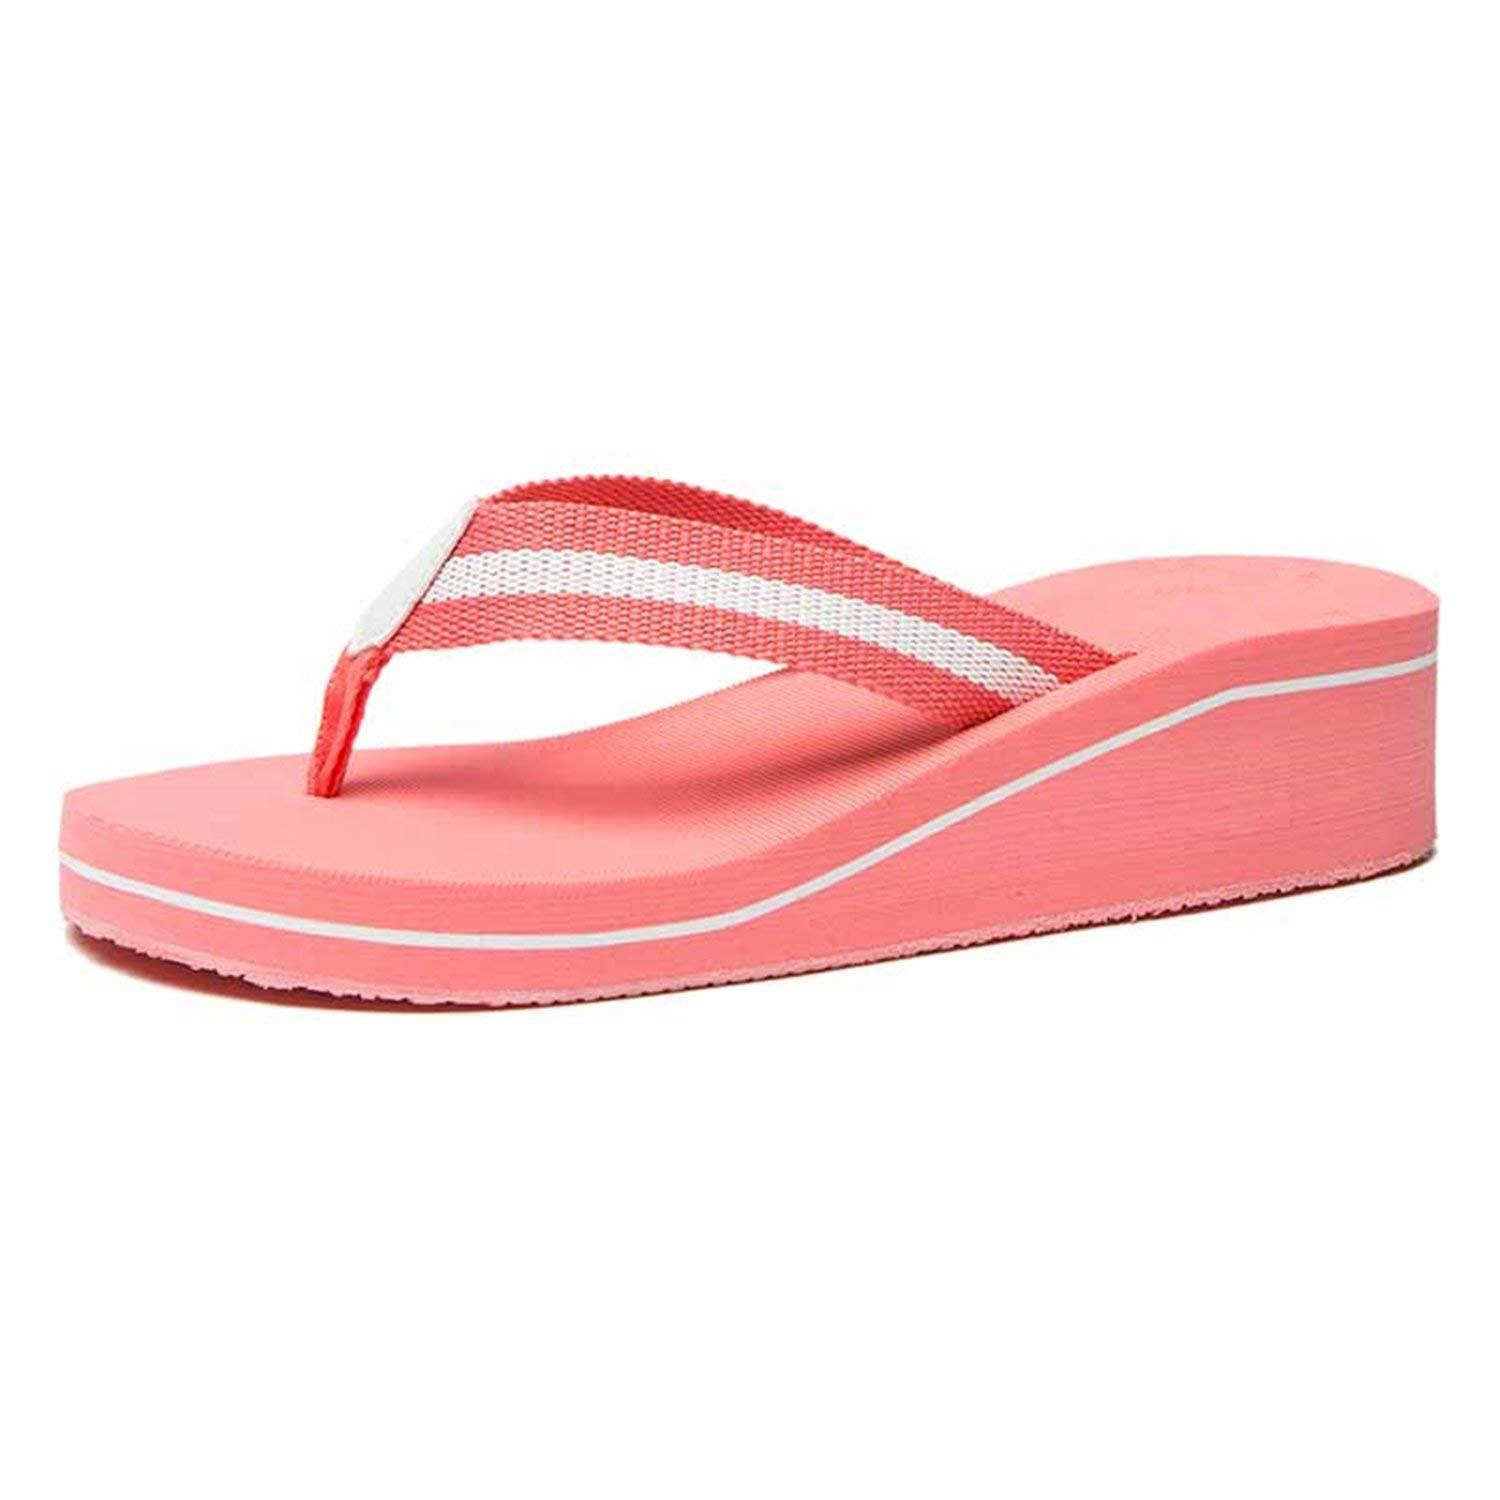 89b3b3da7a6a1 Get Quotations · Jwhui Flip Flops Women Platform Sandals Summer Shoes Woman  Beach Flip Flops for Women s Fashion Casual